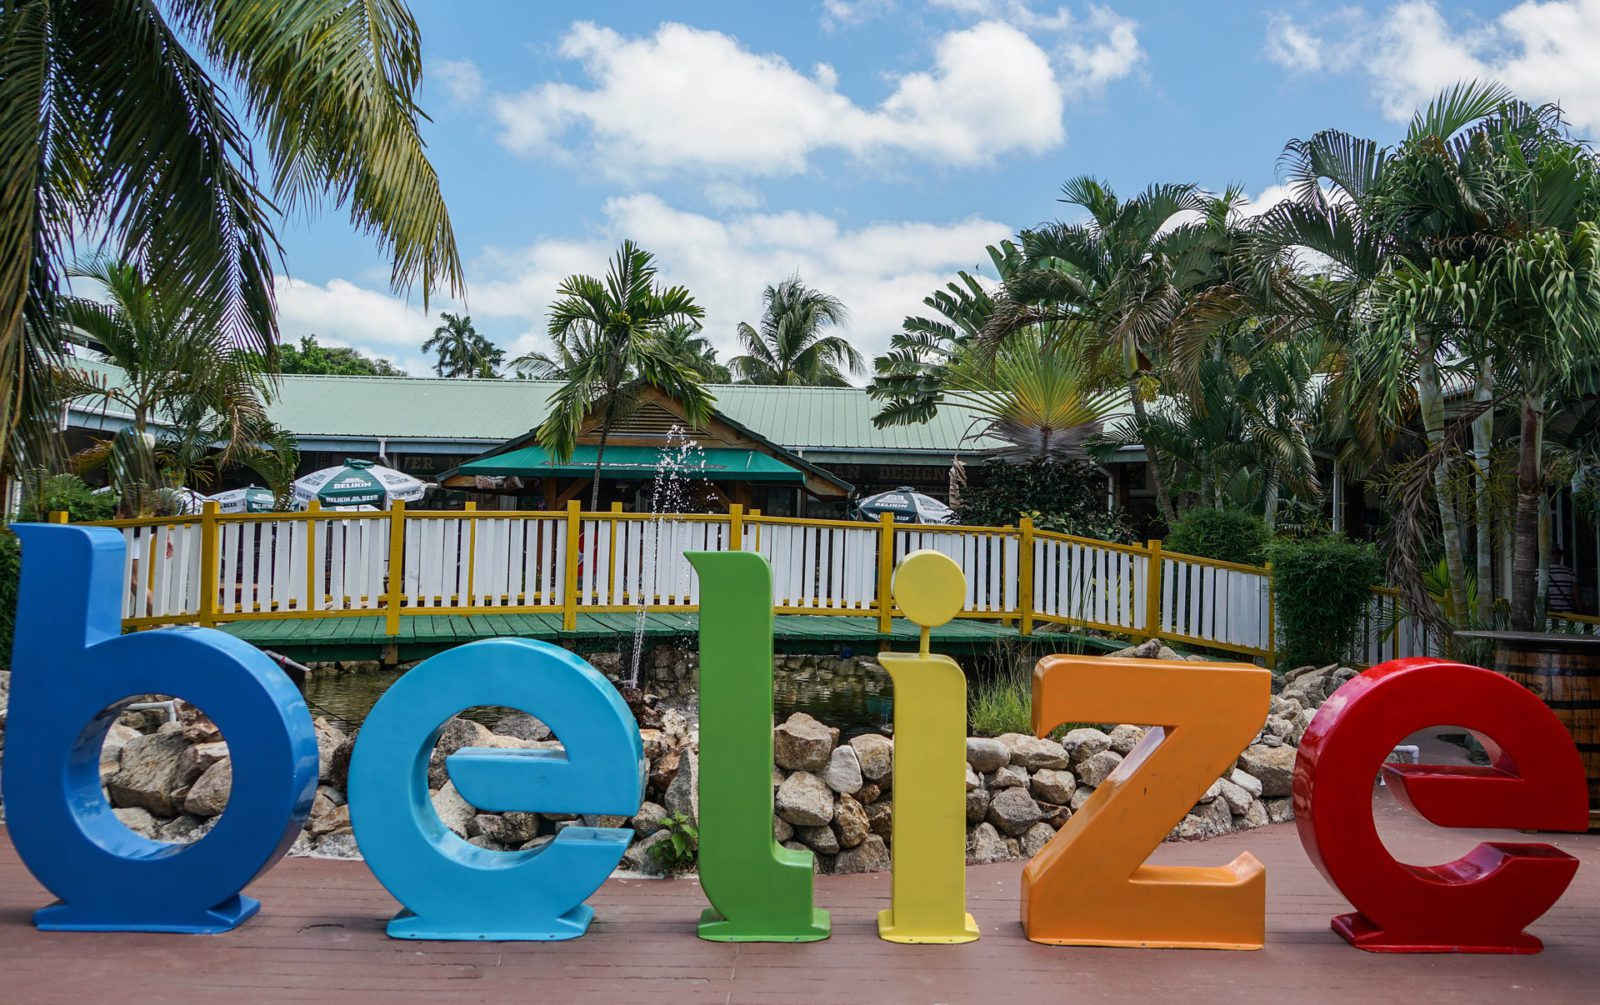 Flight Deal Round Trip From San Francisco Area to Belize #sanfrancisco #belize #1week